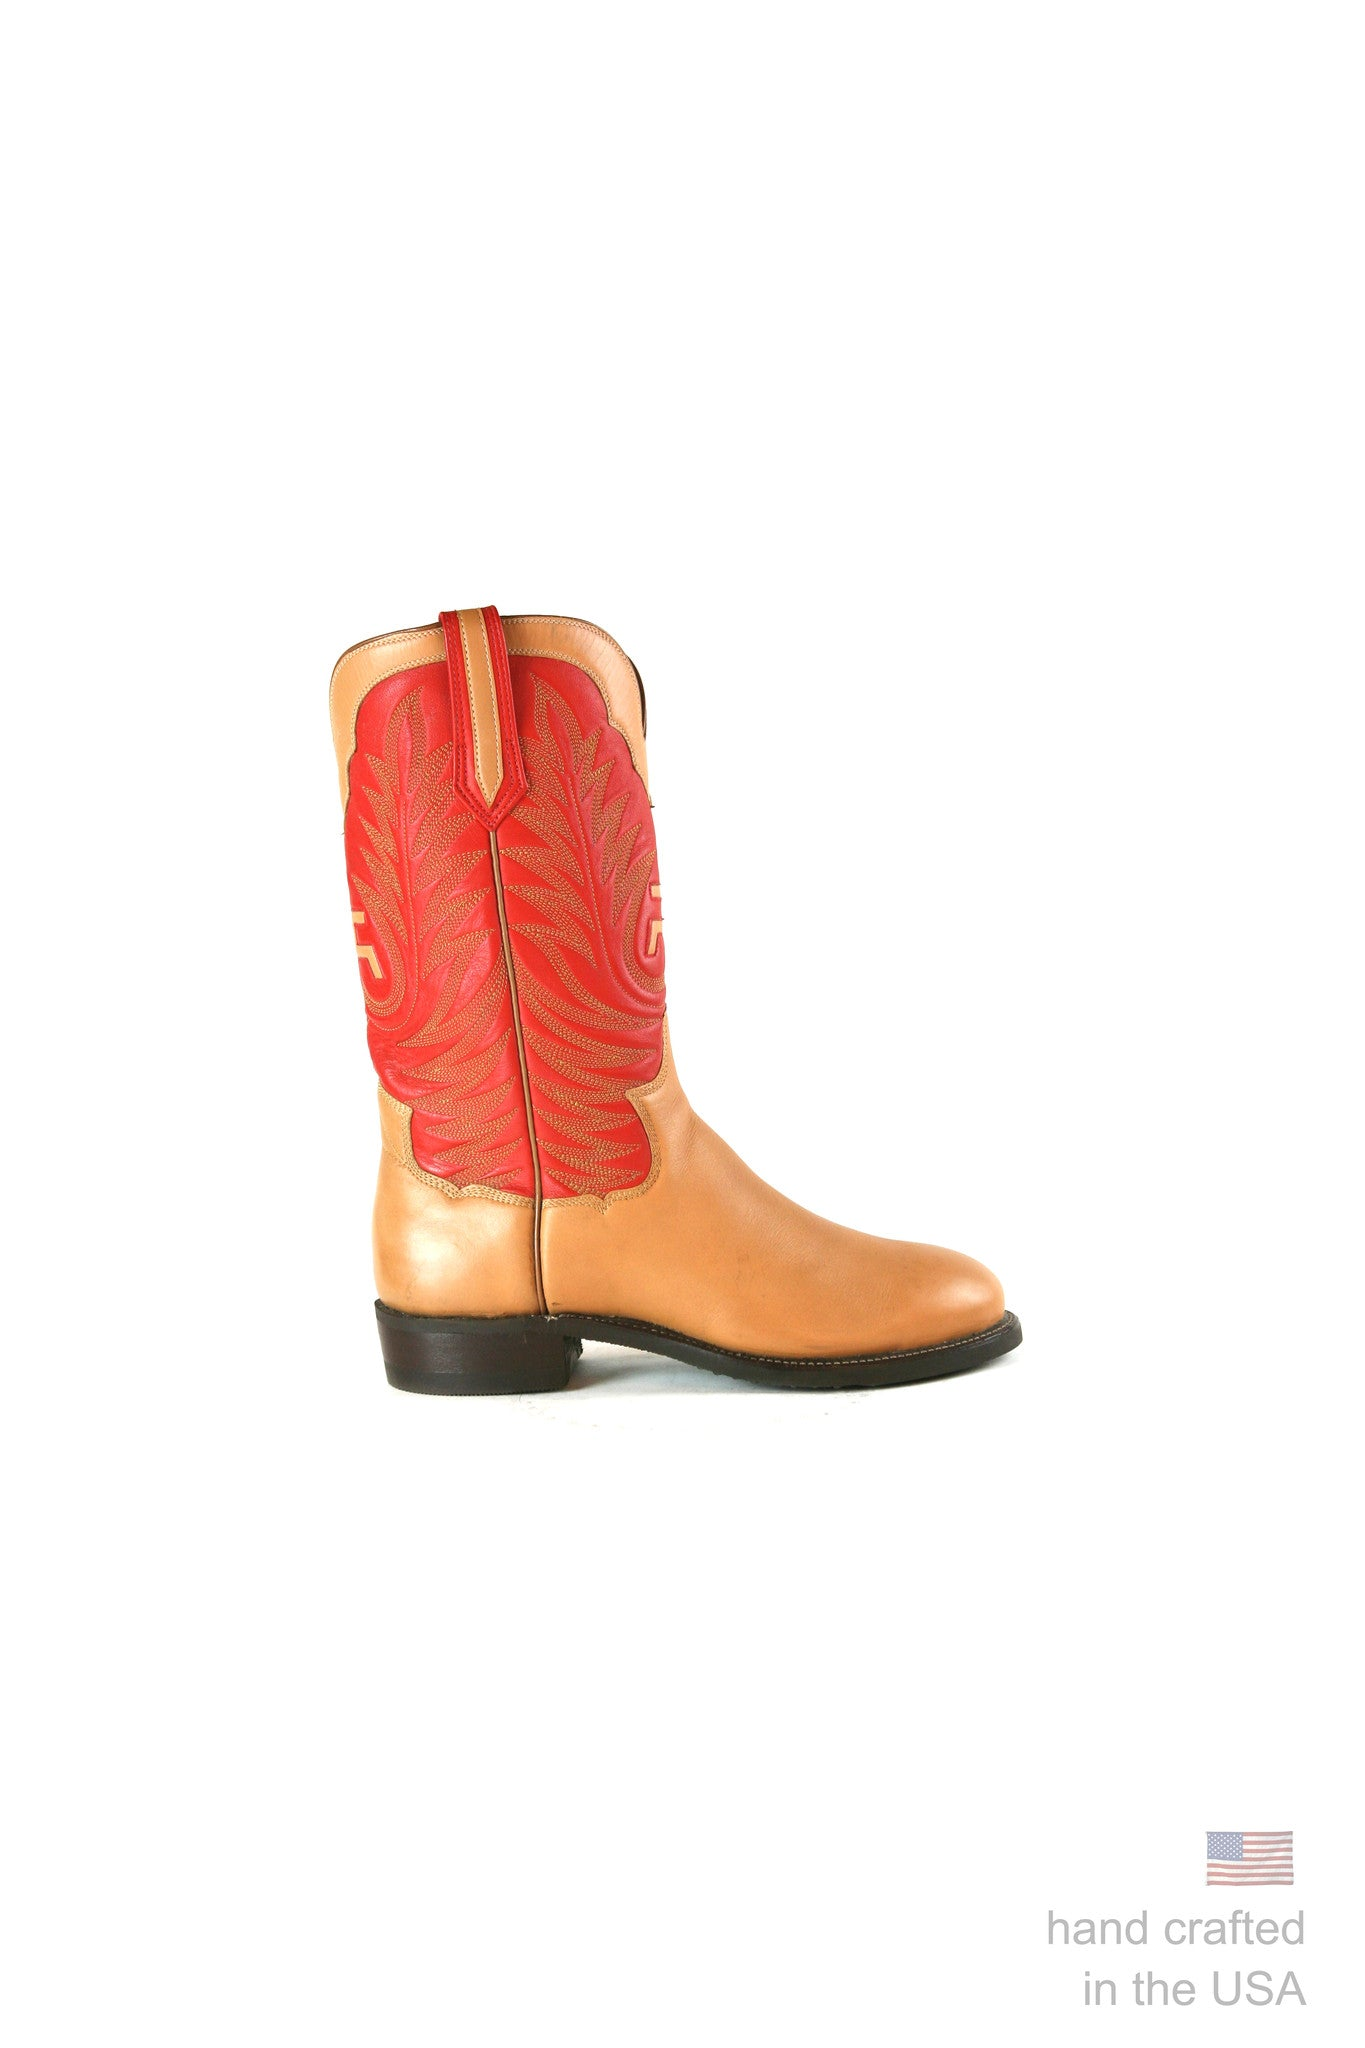 Singles: Boot 0009: Size 9D